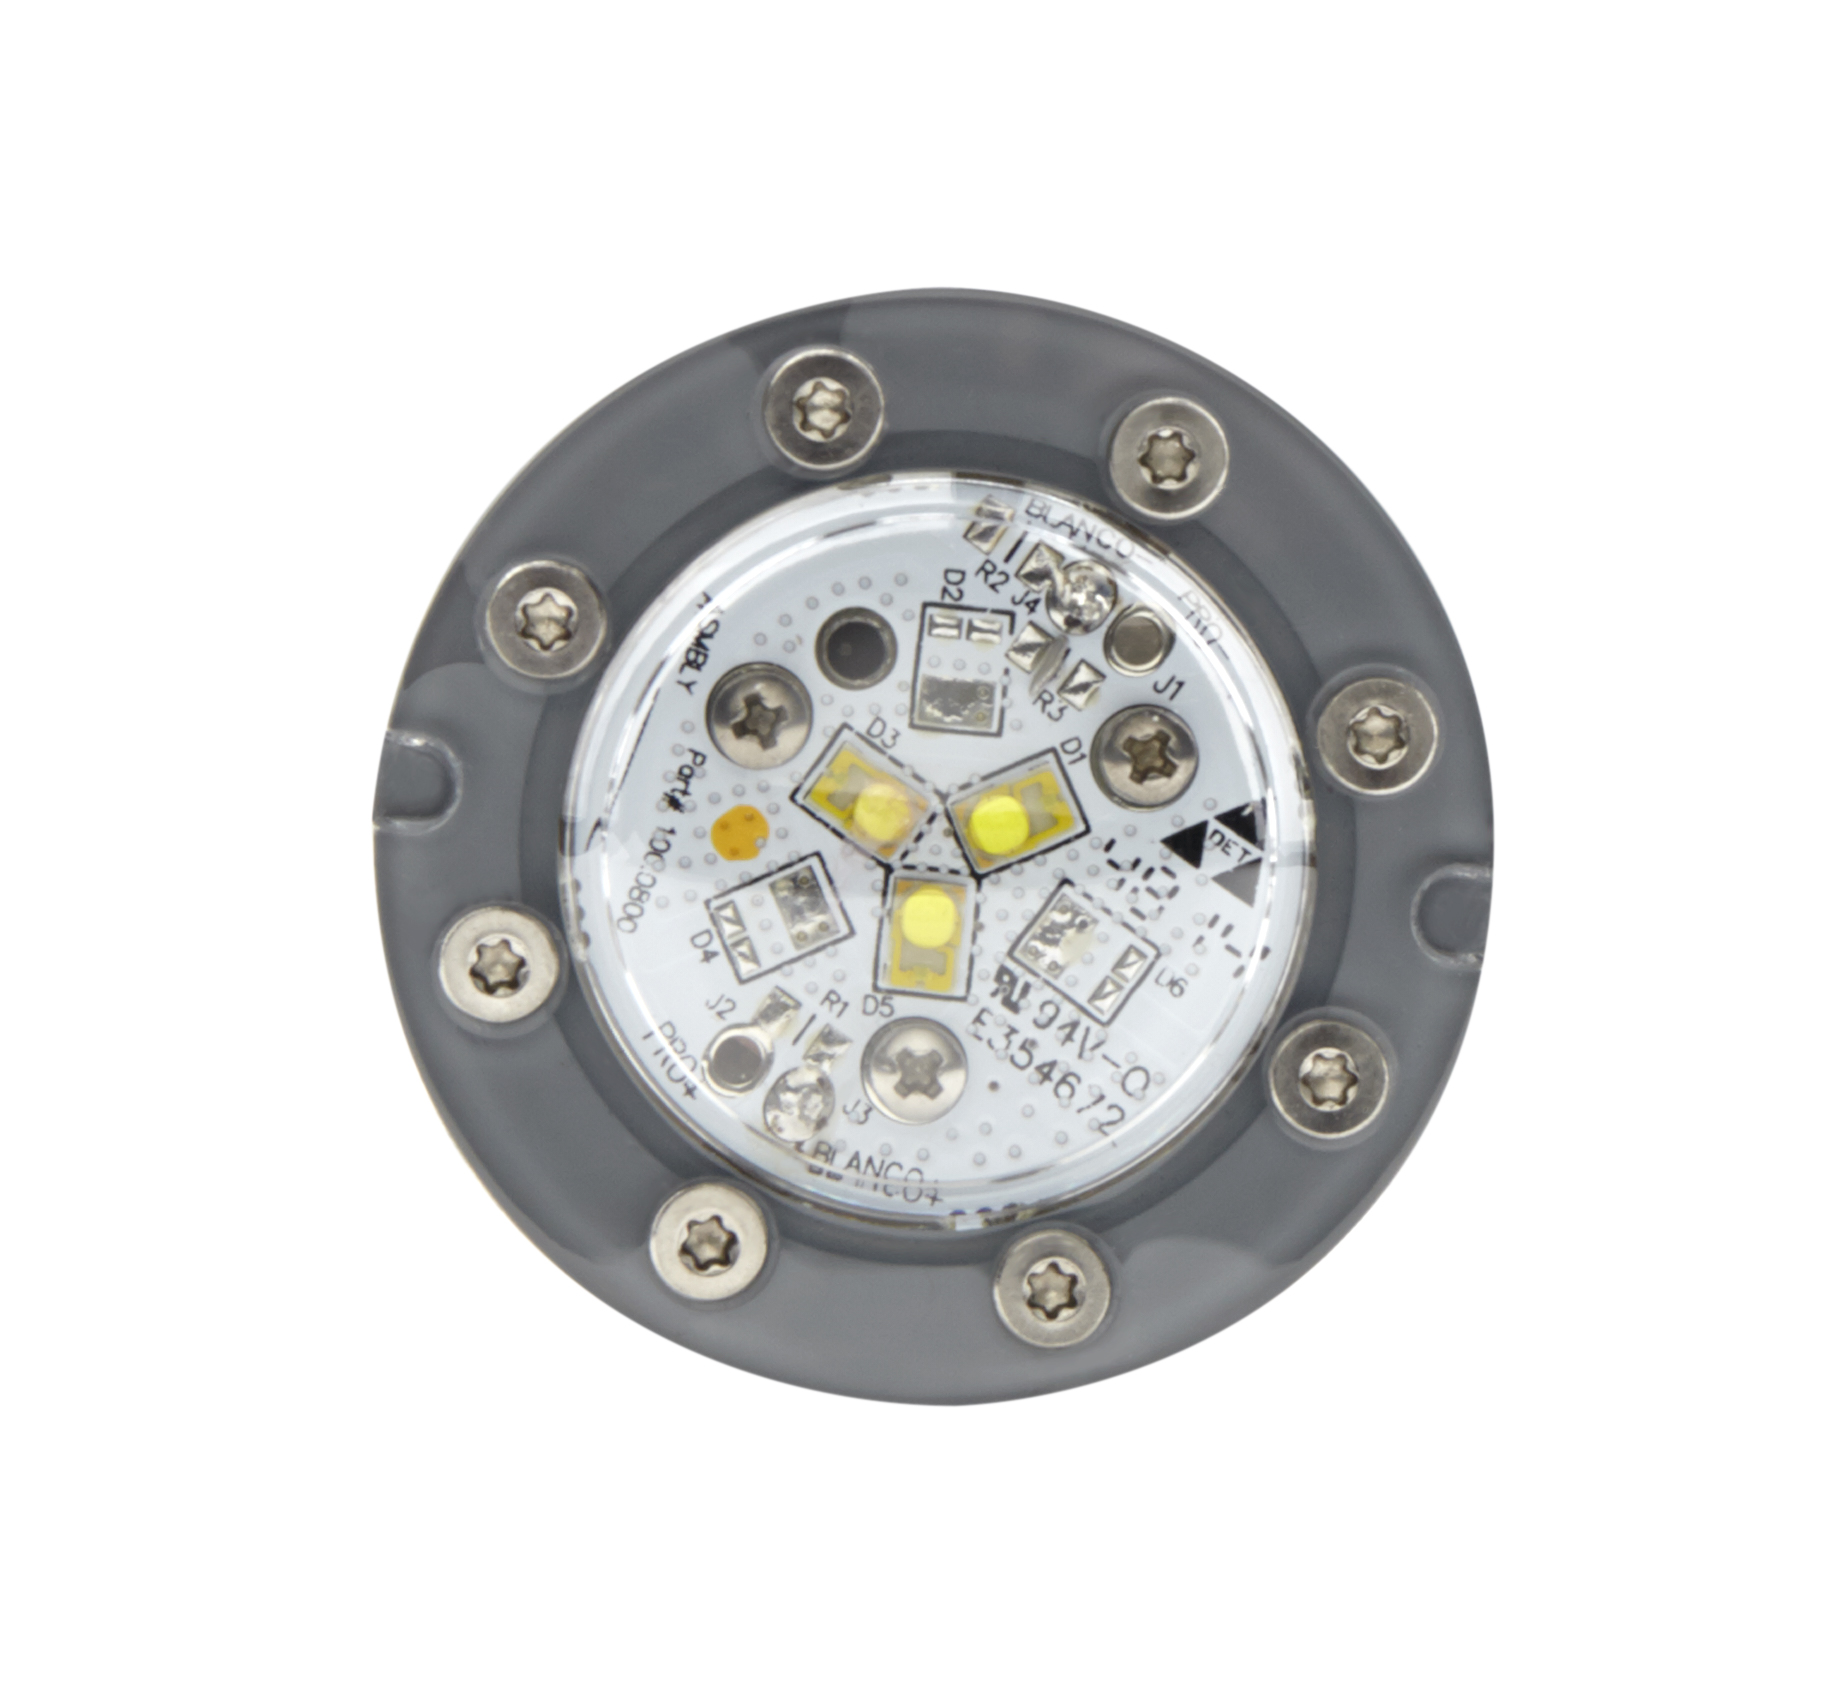 Nicheless LED Pool Lights | Jandy Pro Series